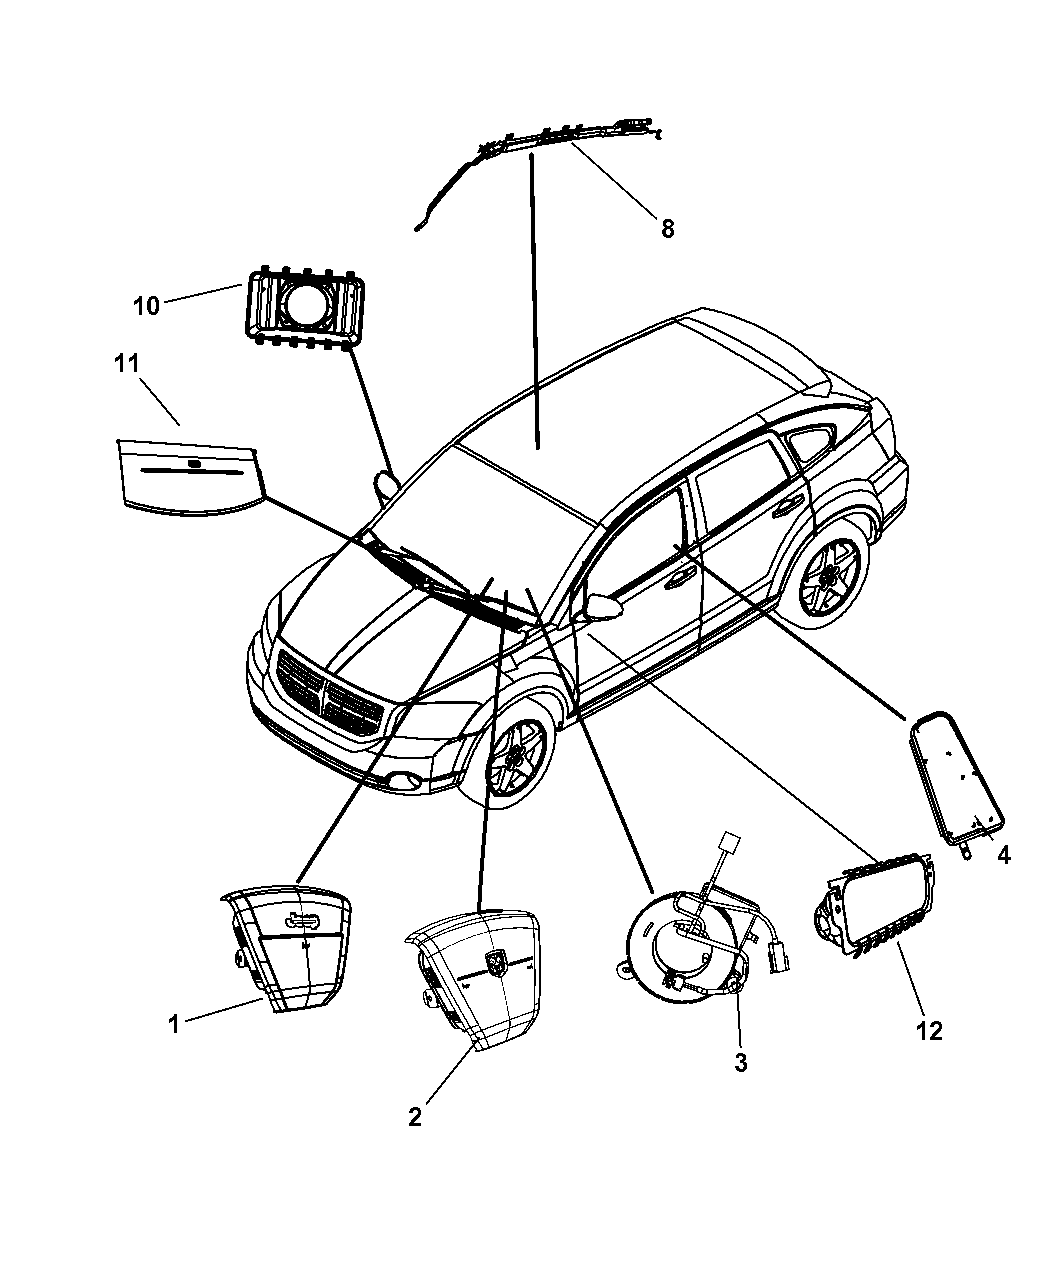 2007 Dodge Caliber Air Bags Clock Spring Mopar Parts Giant Wiring Schematic Starting